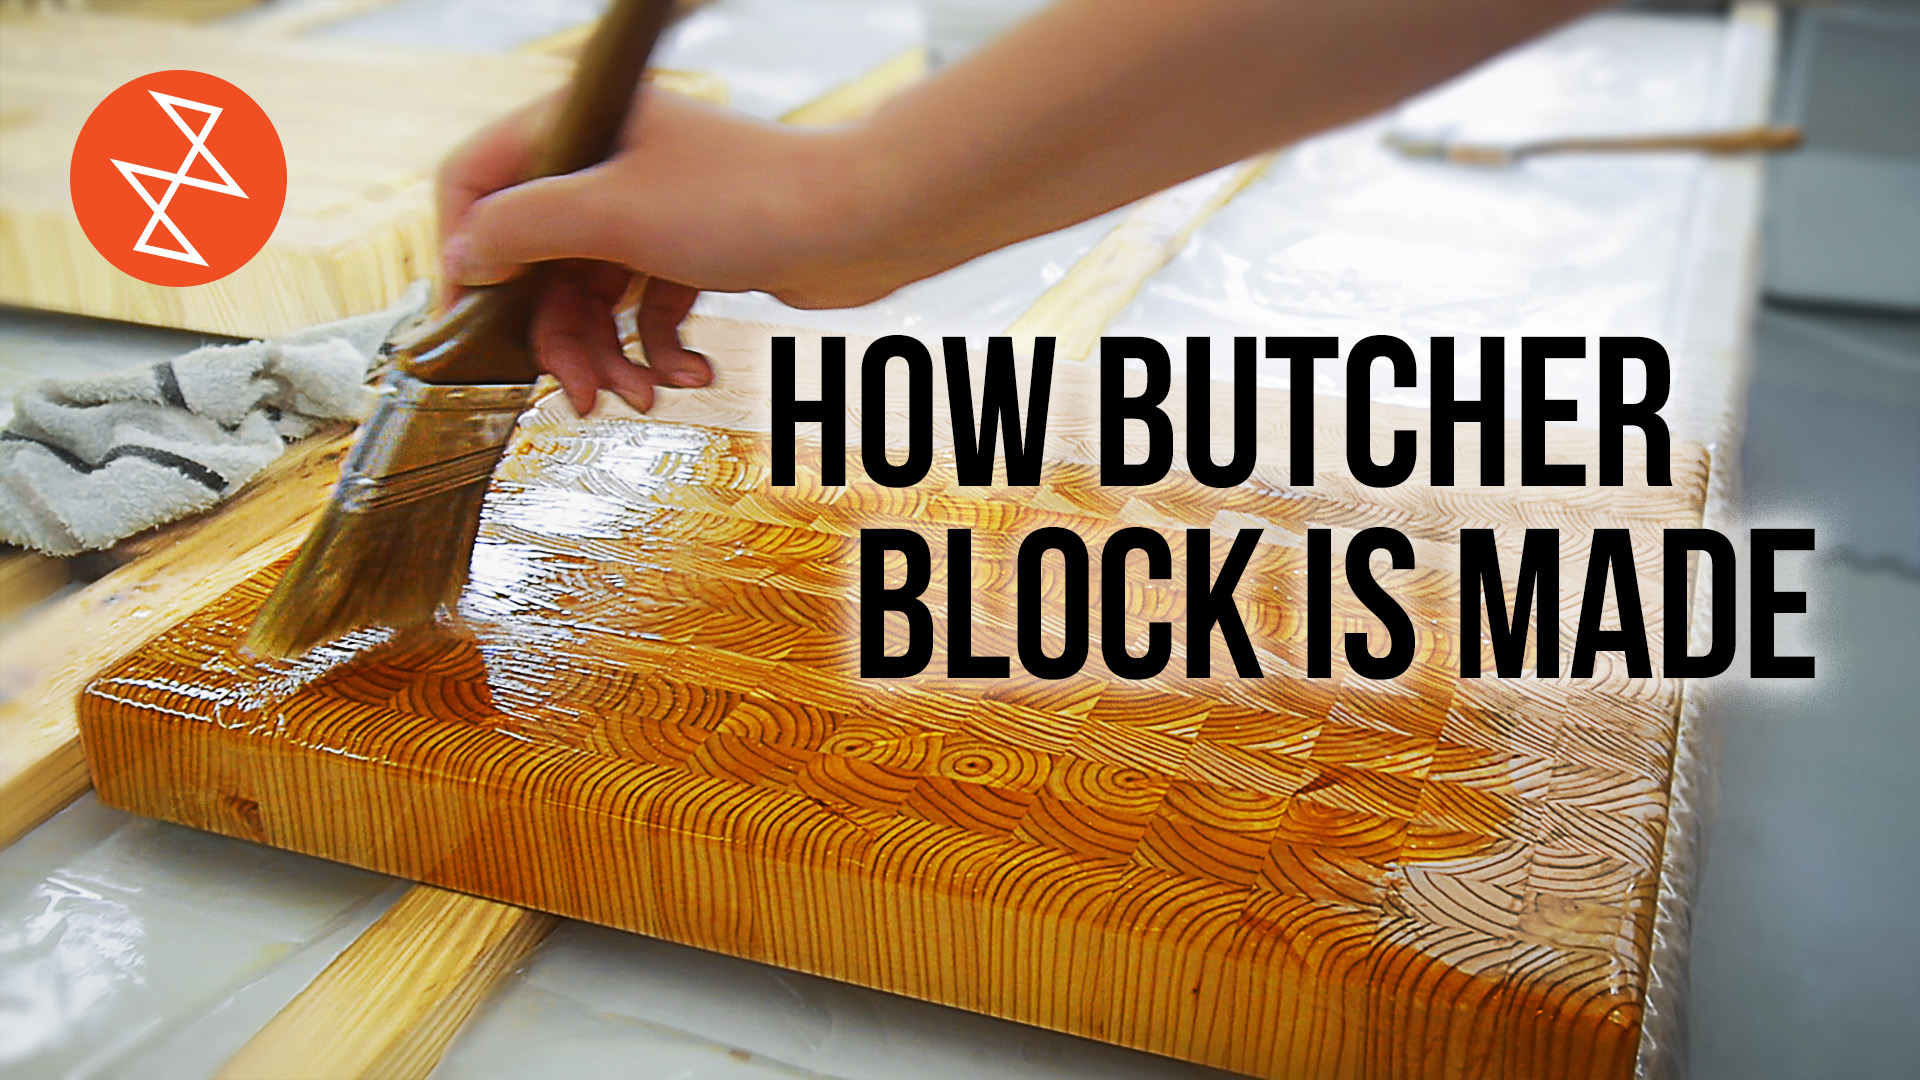 How Butcher Block is Made